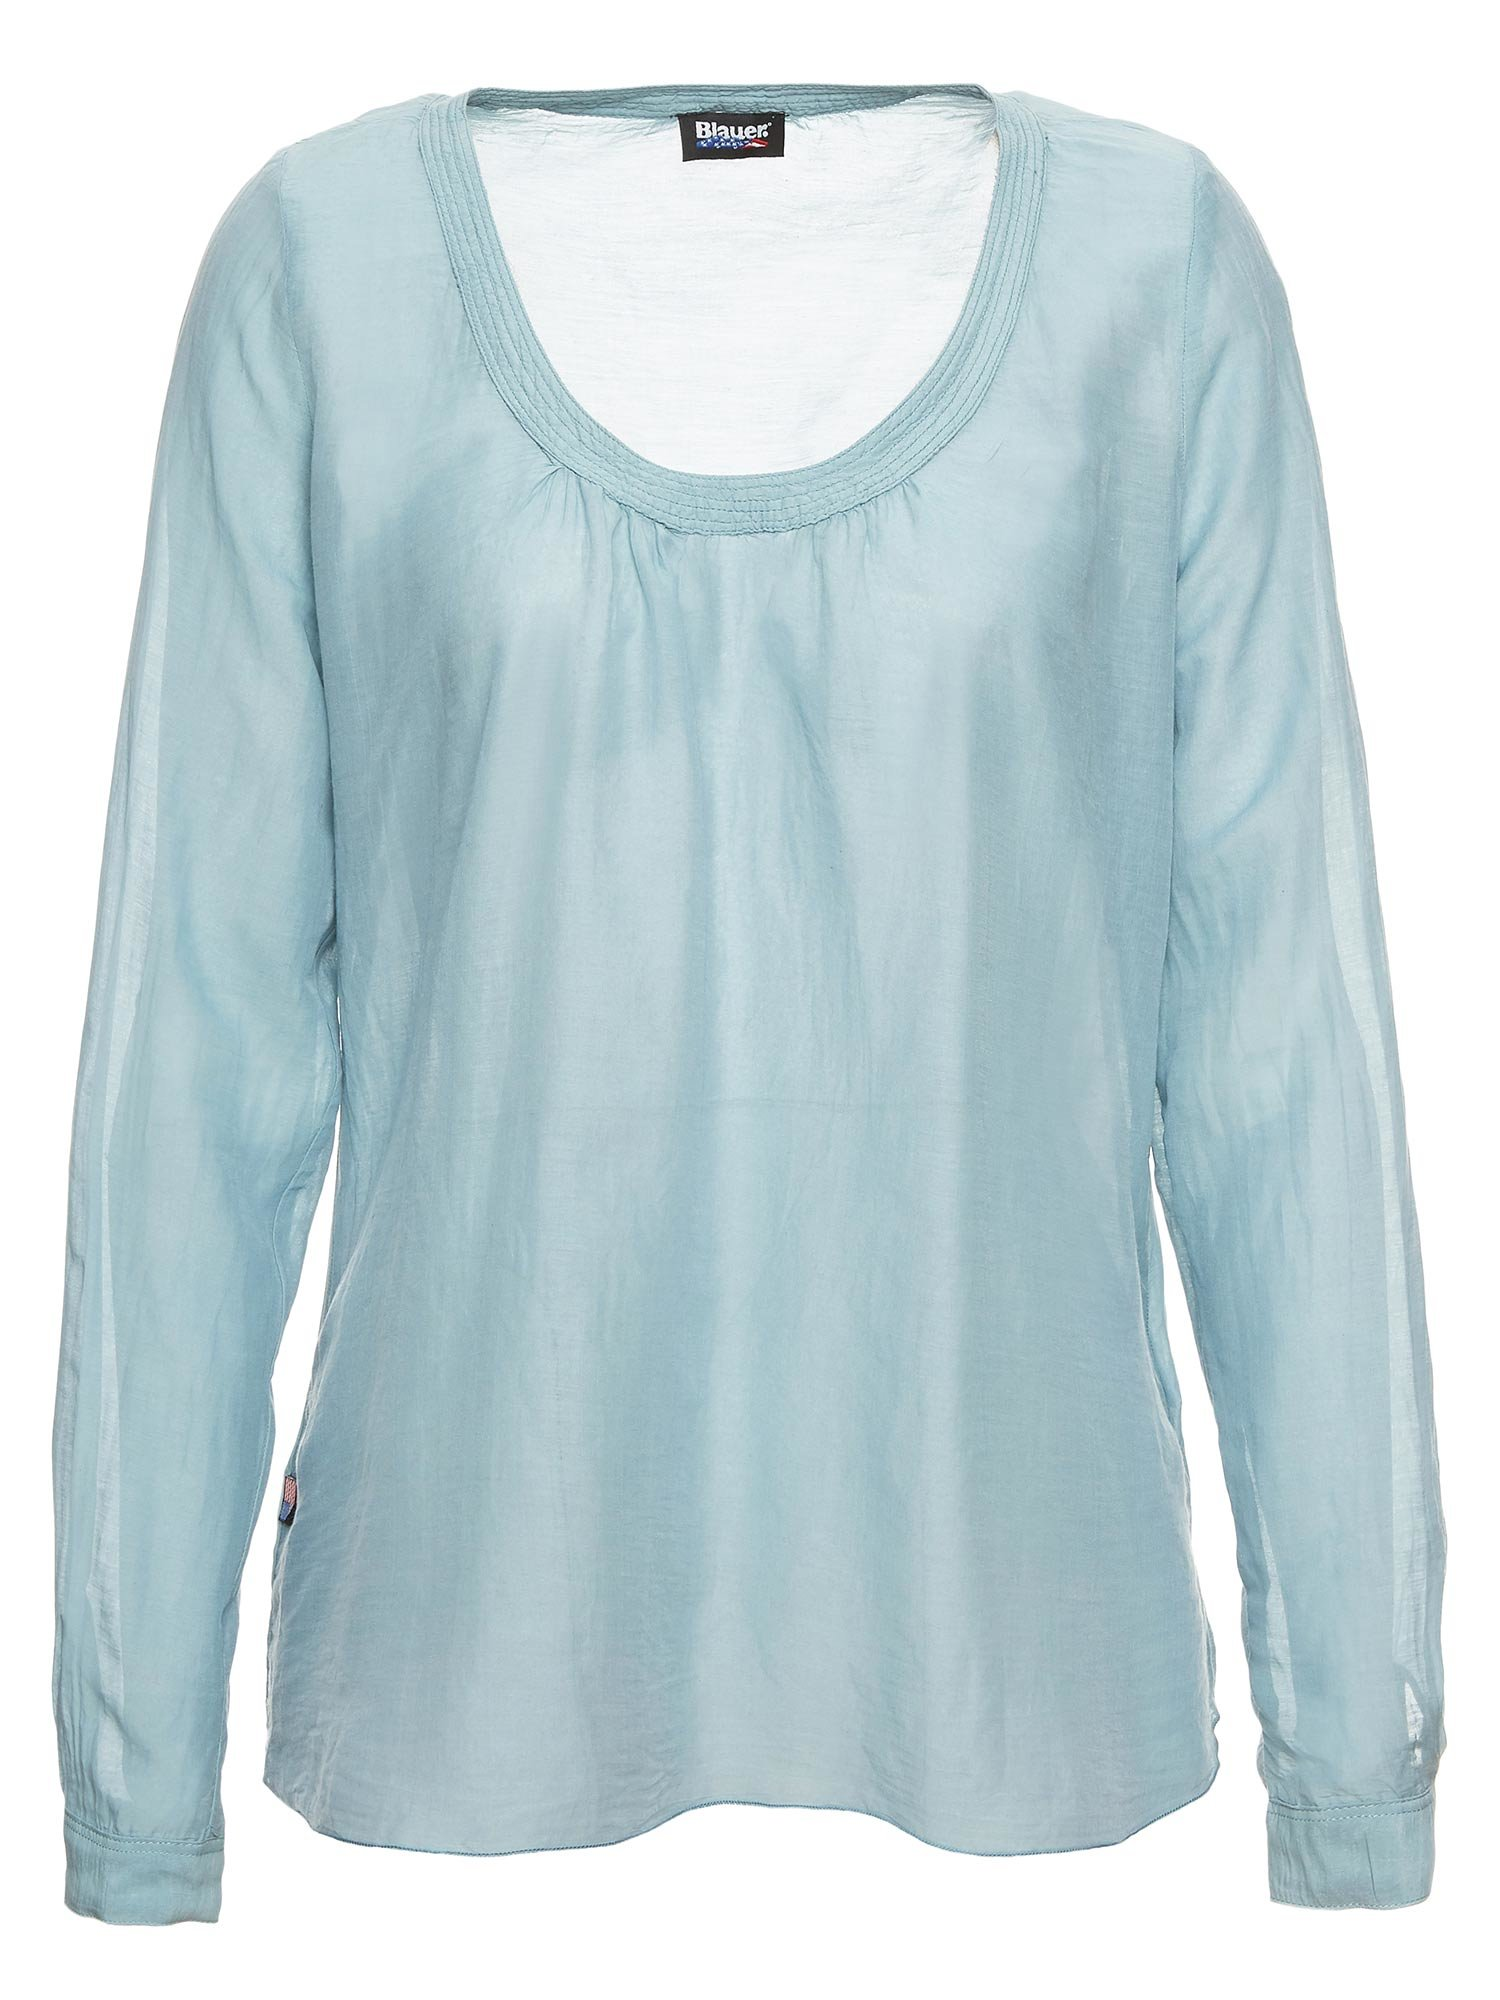 COTTON AND SILK VOILE ROUND NECK SHIRT - Blauer